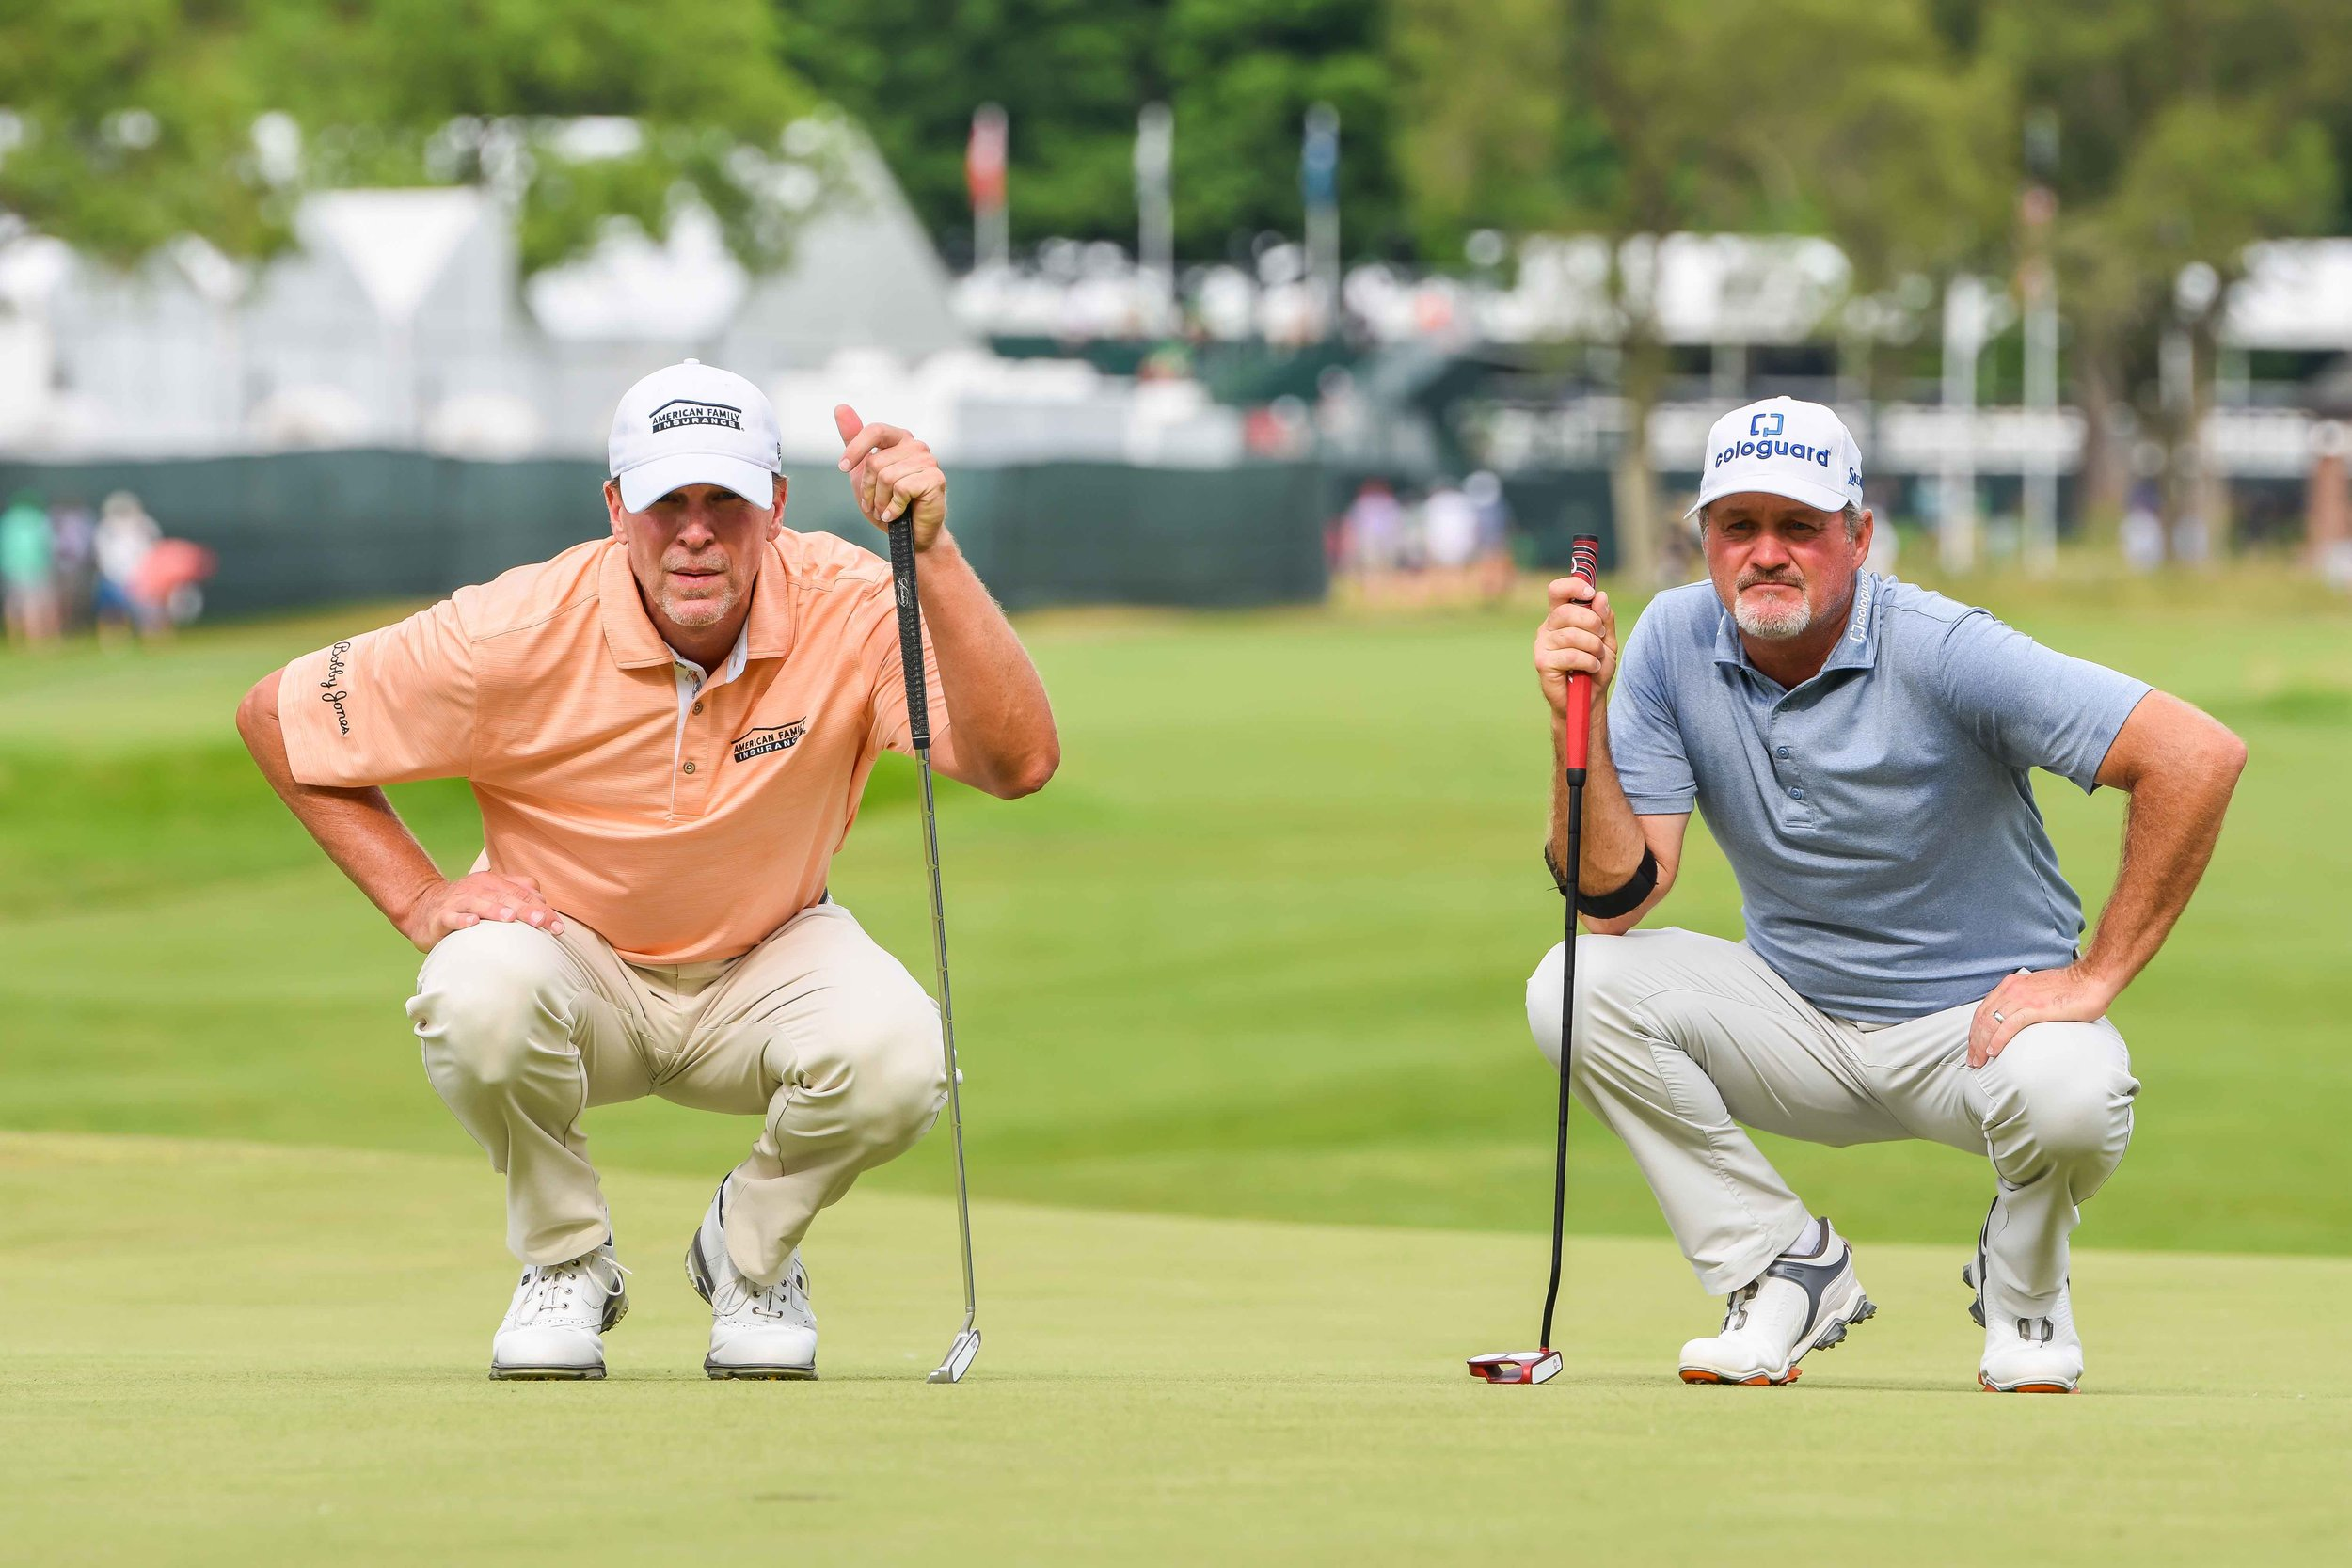 It was barely a two man race with Jerry Kelly trailing Stricker by at least 5 shots all Sunday.